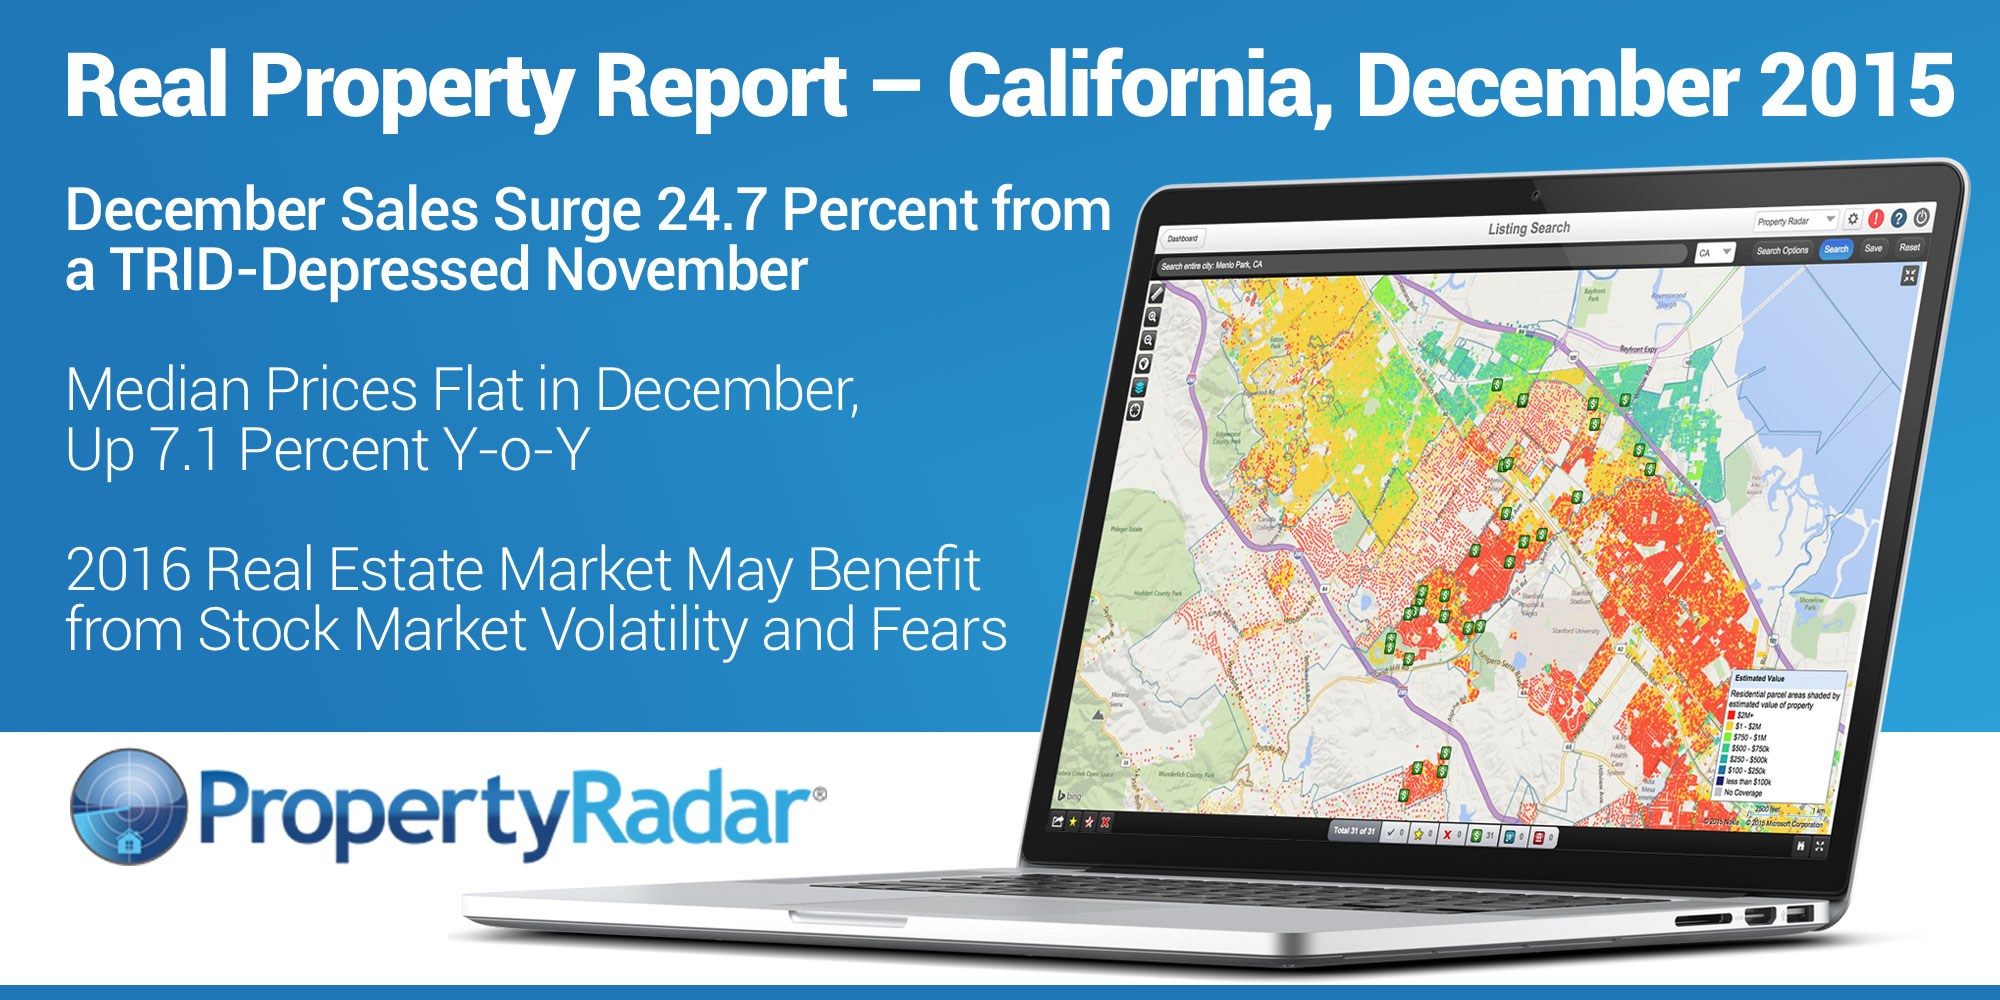 December Sales Surge 24.7 Percent from a TRID-Depressed November, Median Prices Flat in December, Up 7.1 Percent Y-o-Y